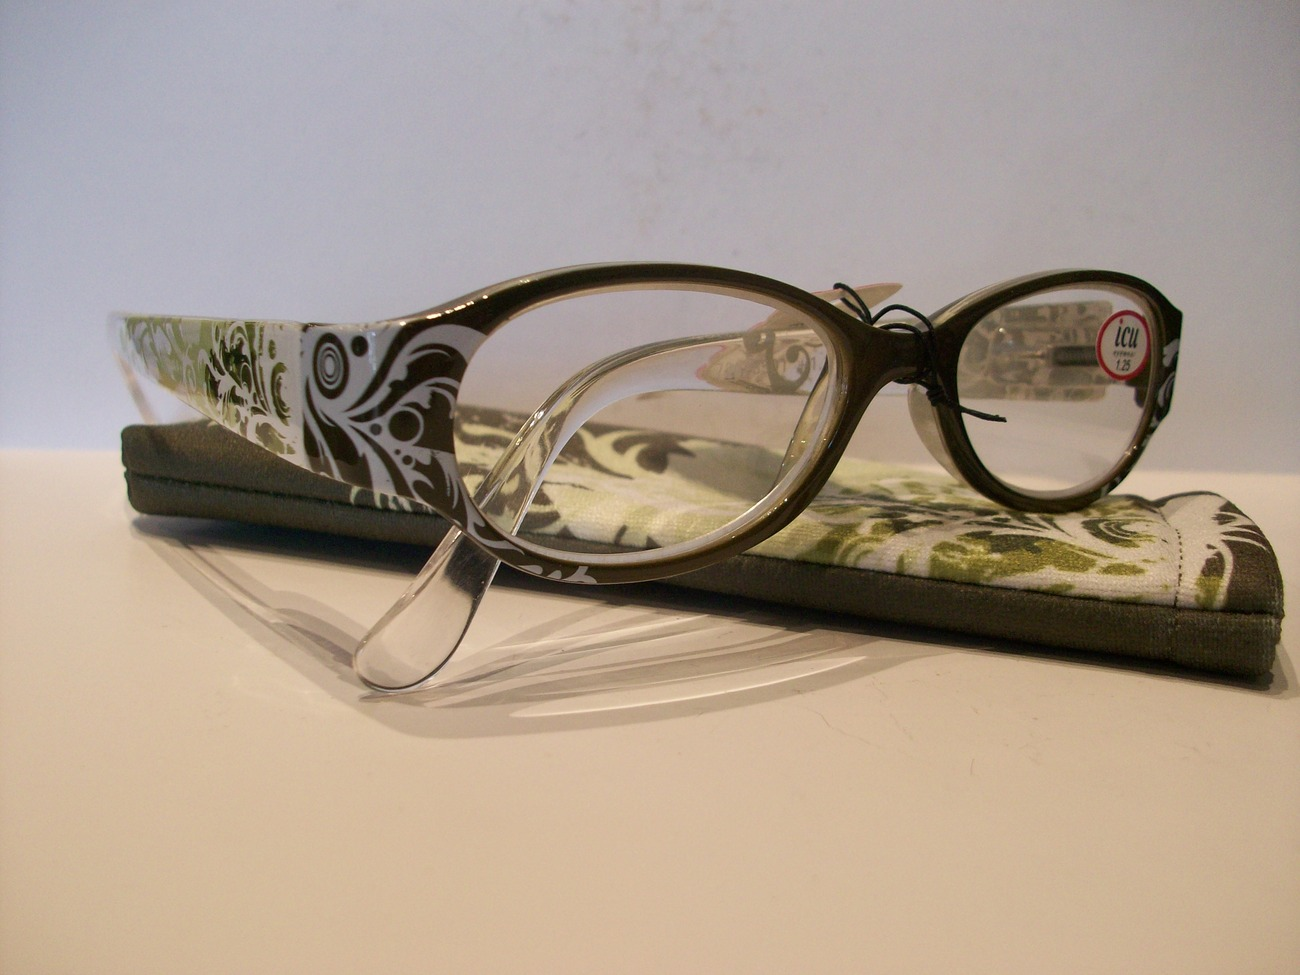 ICU Readers (Reading Glasses), Oval Swirl, Olive, +1.25 Diopter, New